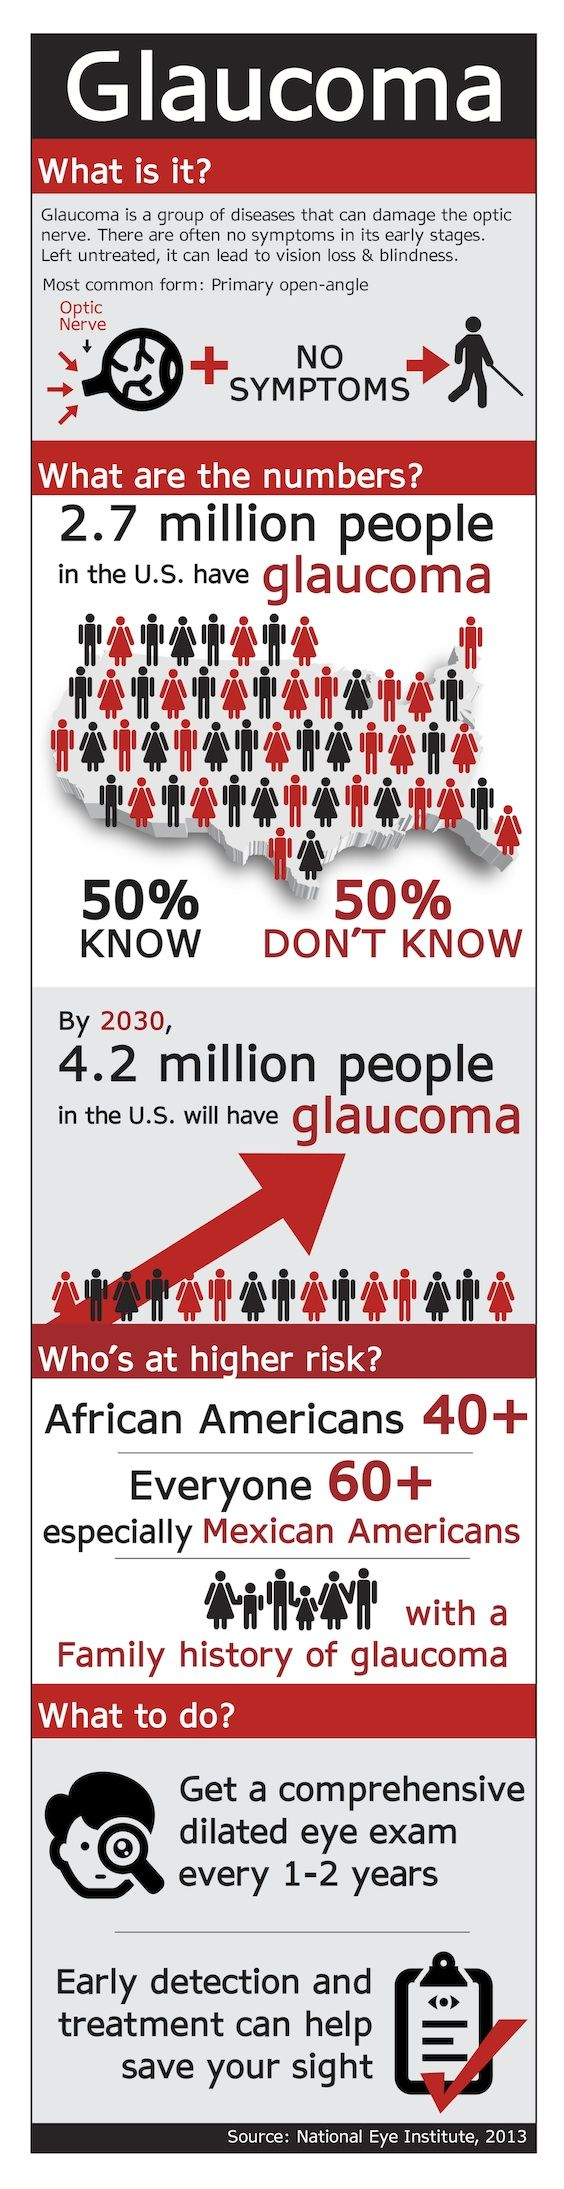 Glaucoma is a disease that many people have, but don't realize they do. No symptoms, how scary. Get a comprehensive eye exam at least every two years.